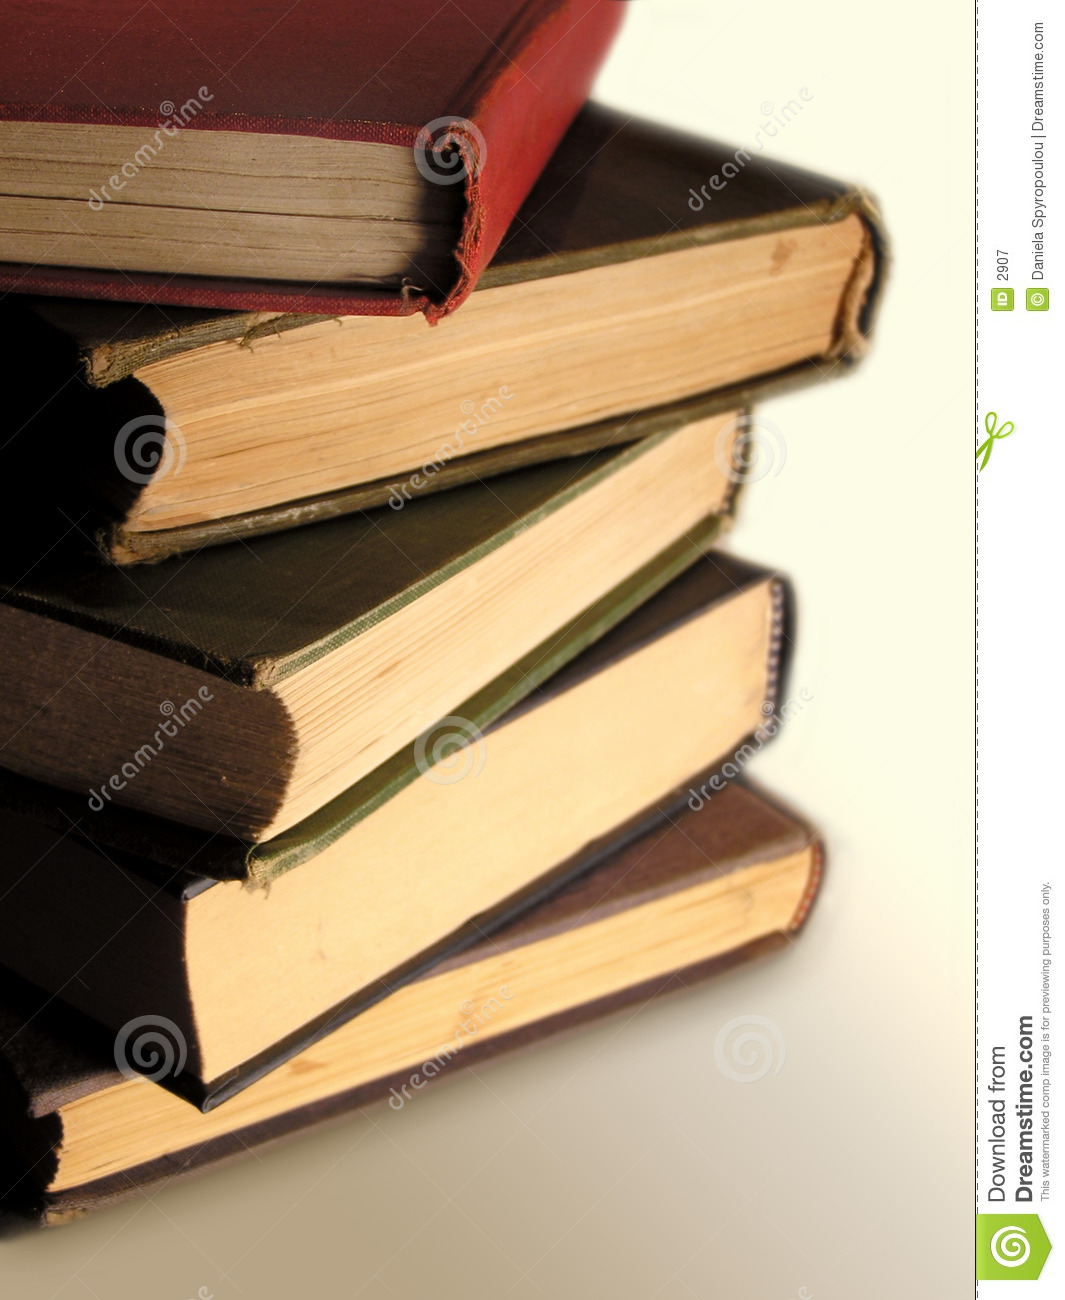 Download Livres image stock. Image du étudiants, bibliographie, formation - 2907